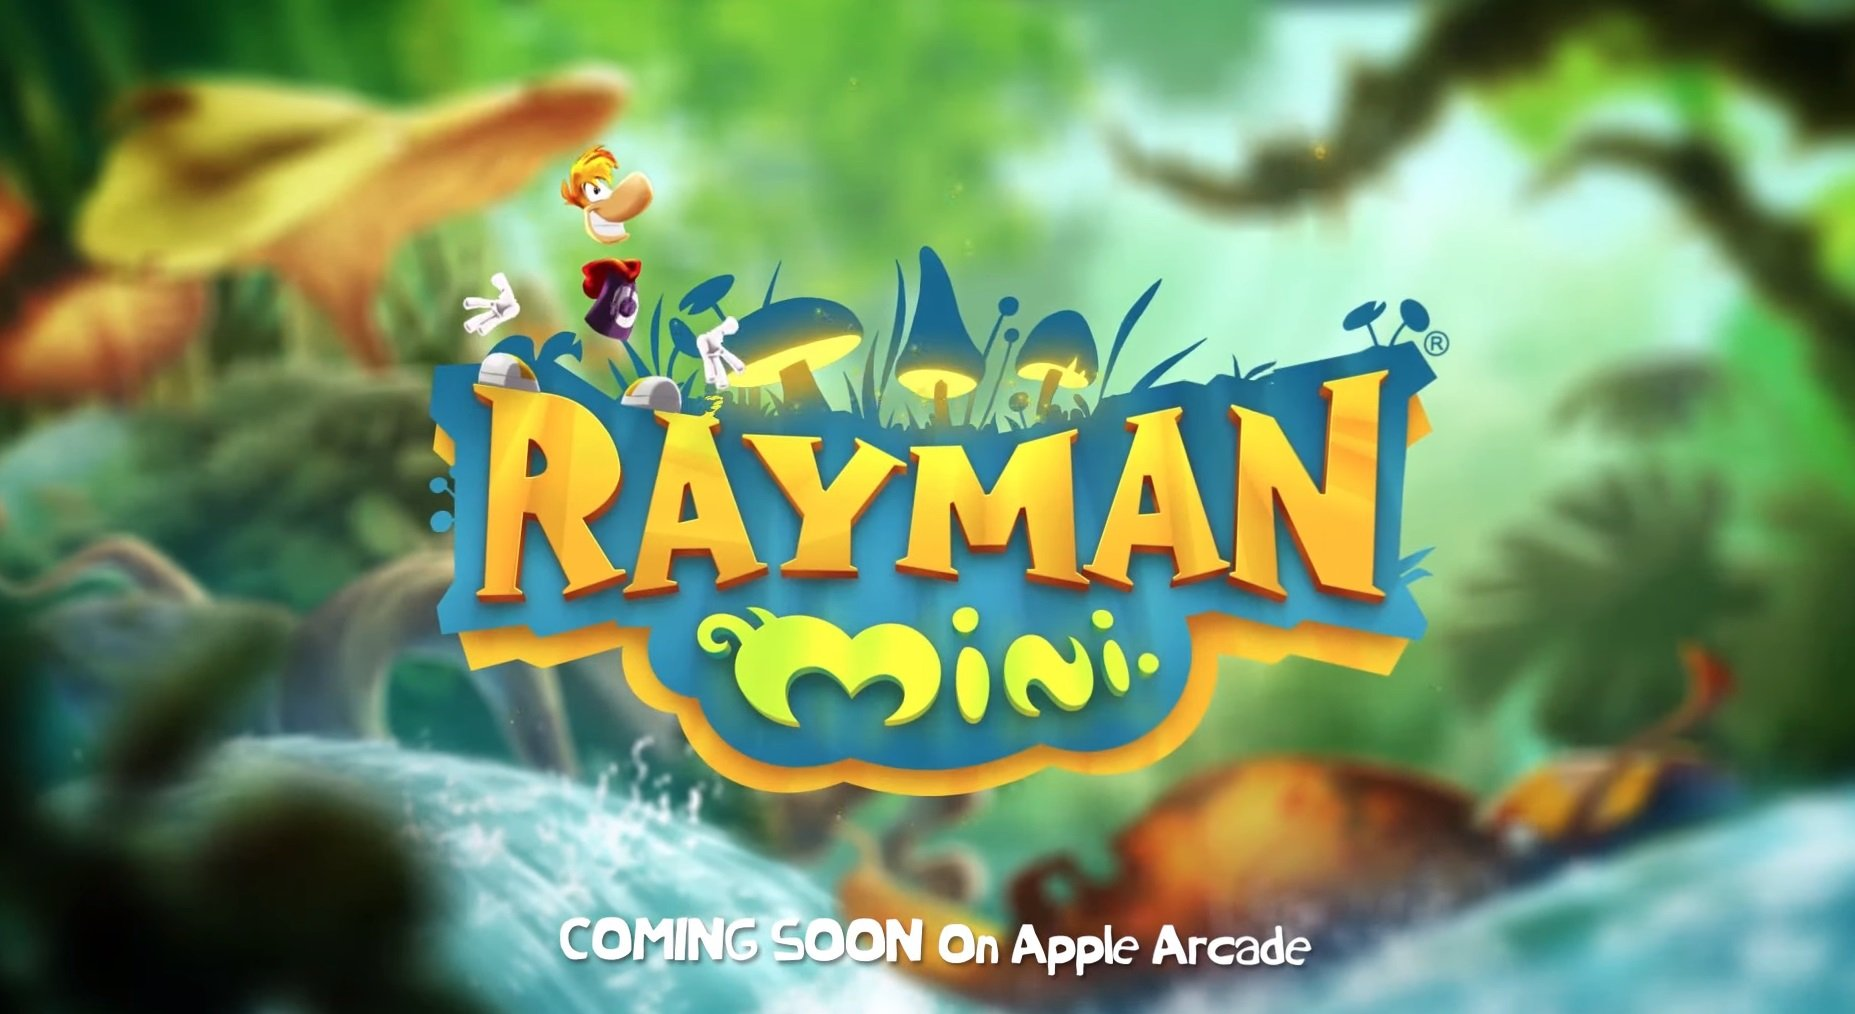 Rayman Mini announced for Apple Arcade